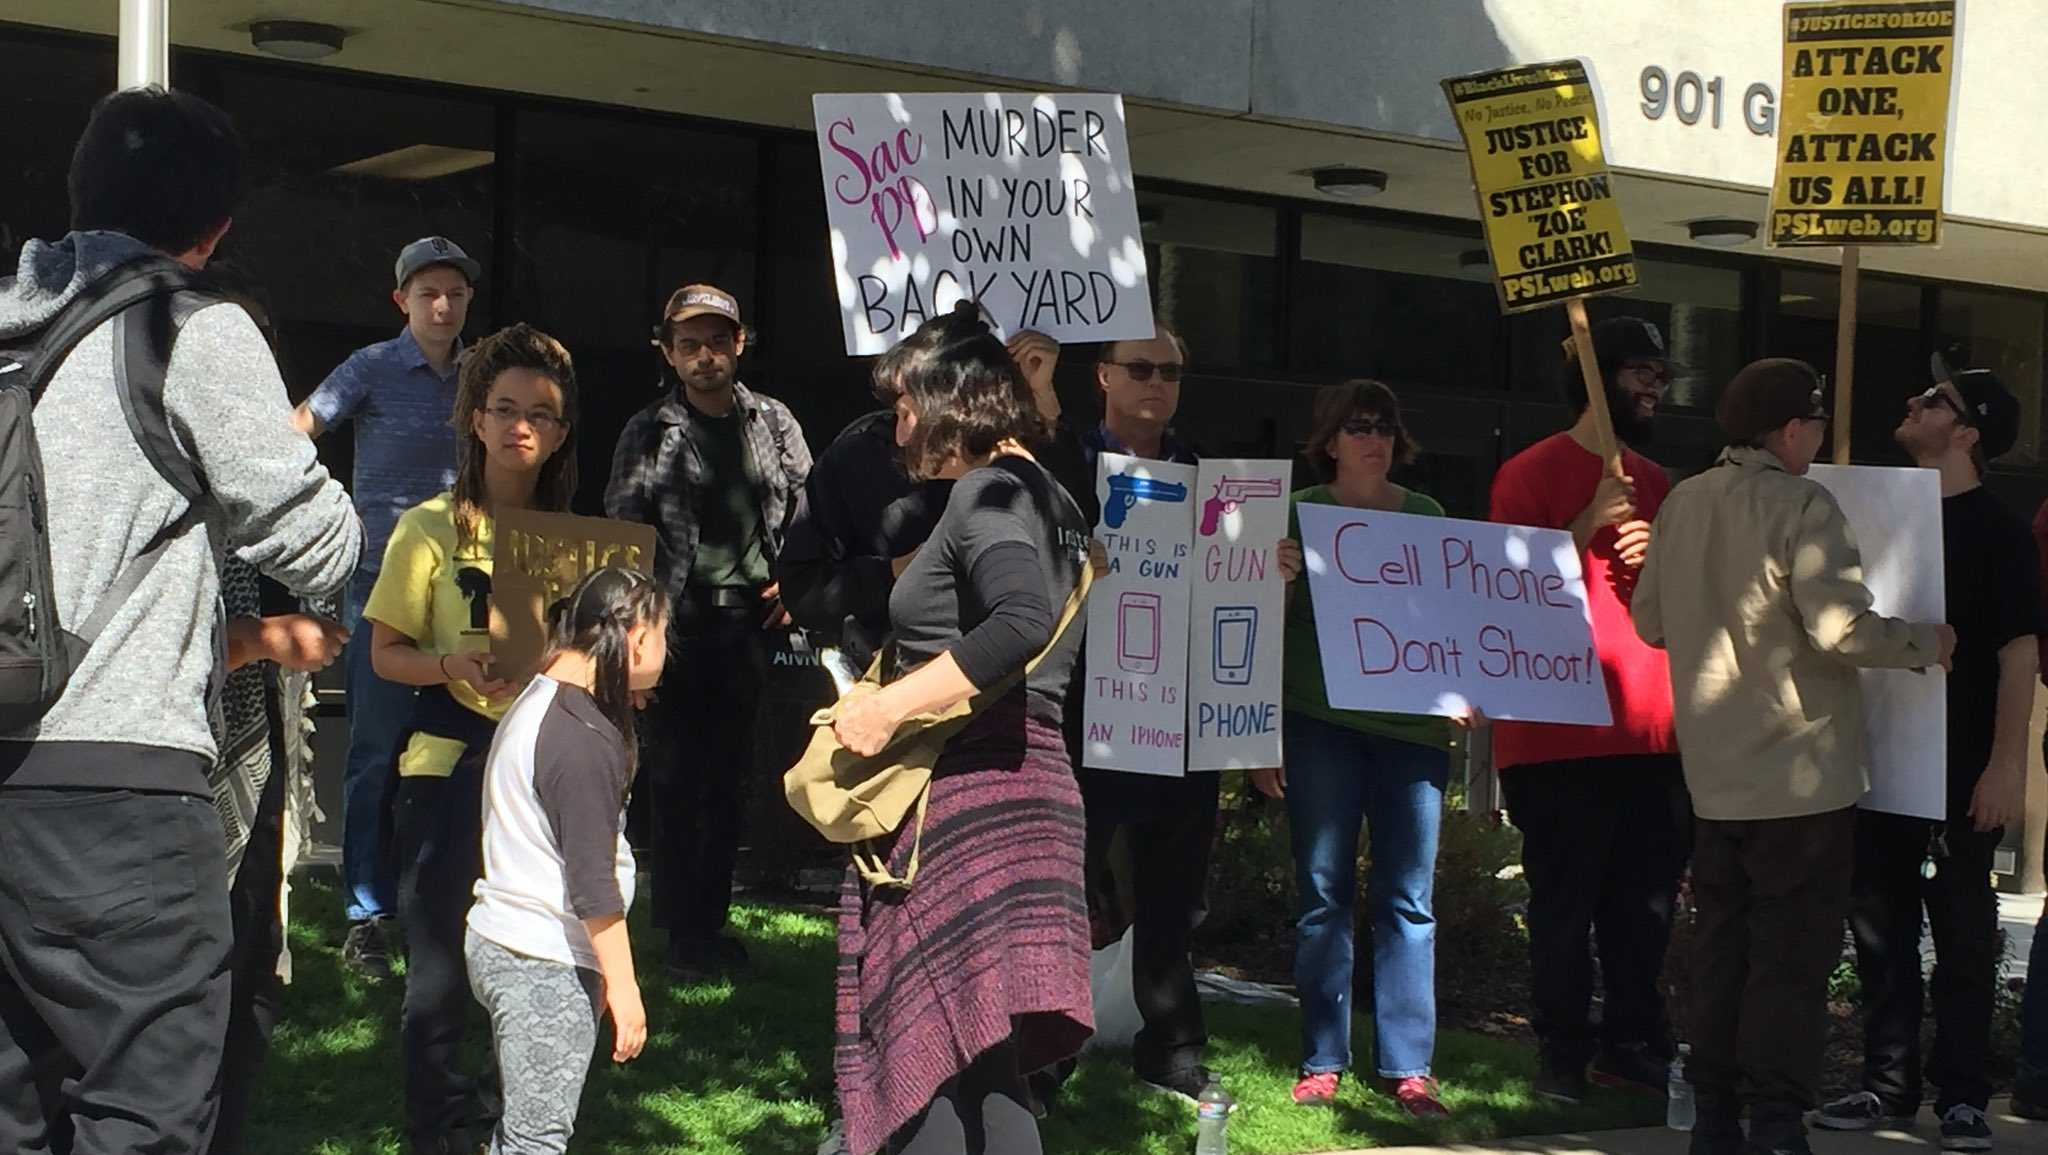 Dozens of protesters rallied outside of the Sacramento County District Attorney's Office Wednesday, March 28, 2018, calling for justice in Stephon Clark's police shooting death.